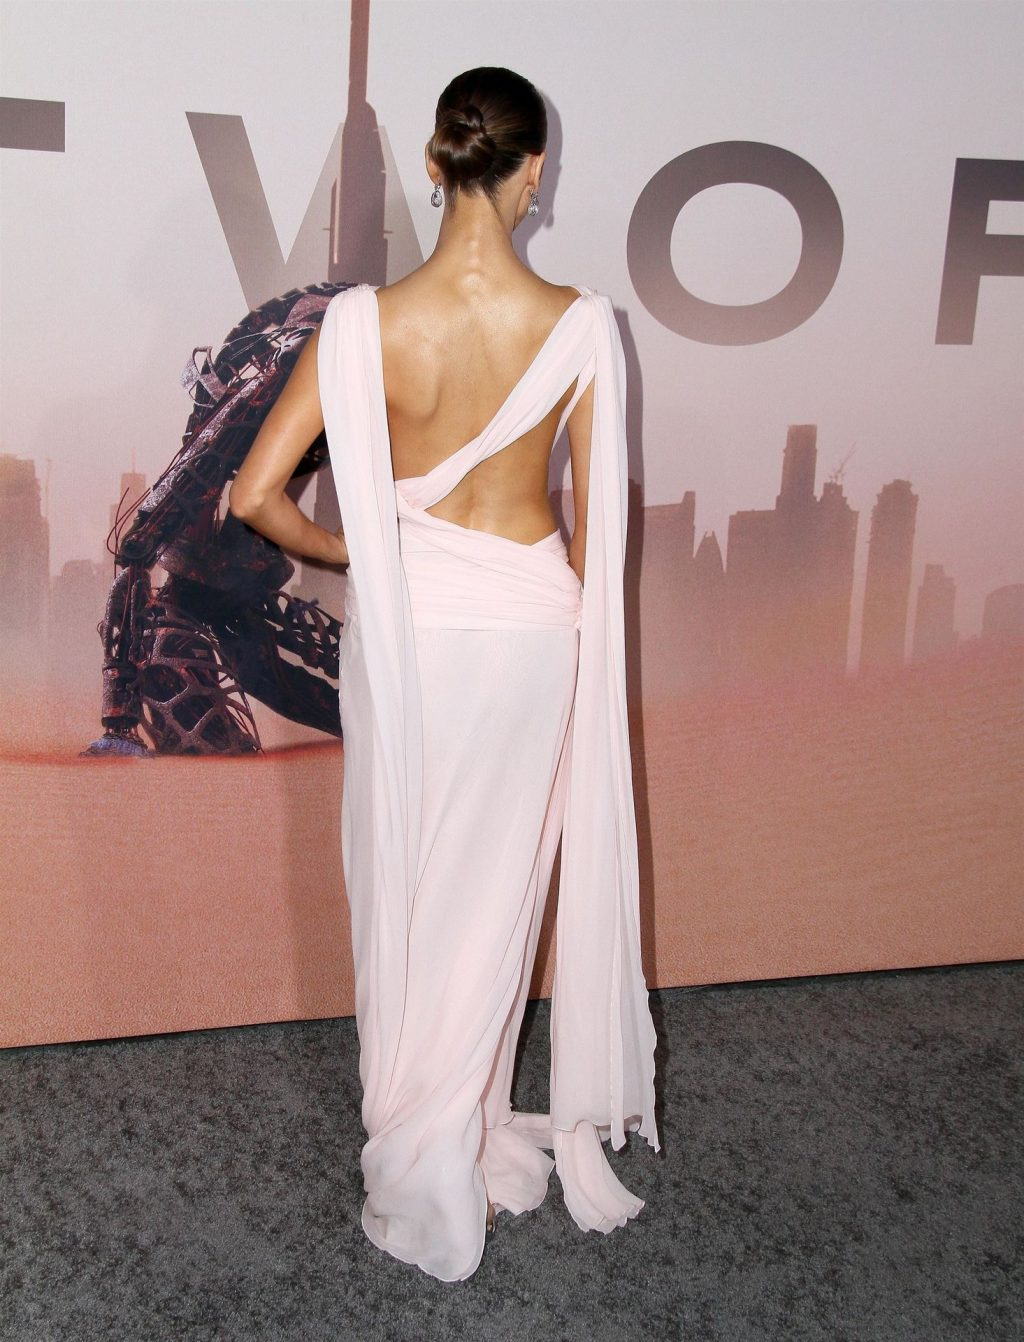 Angela Sarafyan Shows Her Cleavage at the Premiere of HBO's Westworld Season 3 (24 Photos)